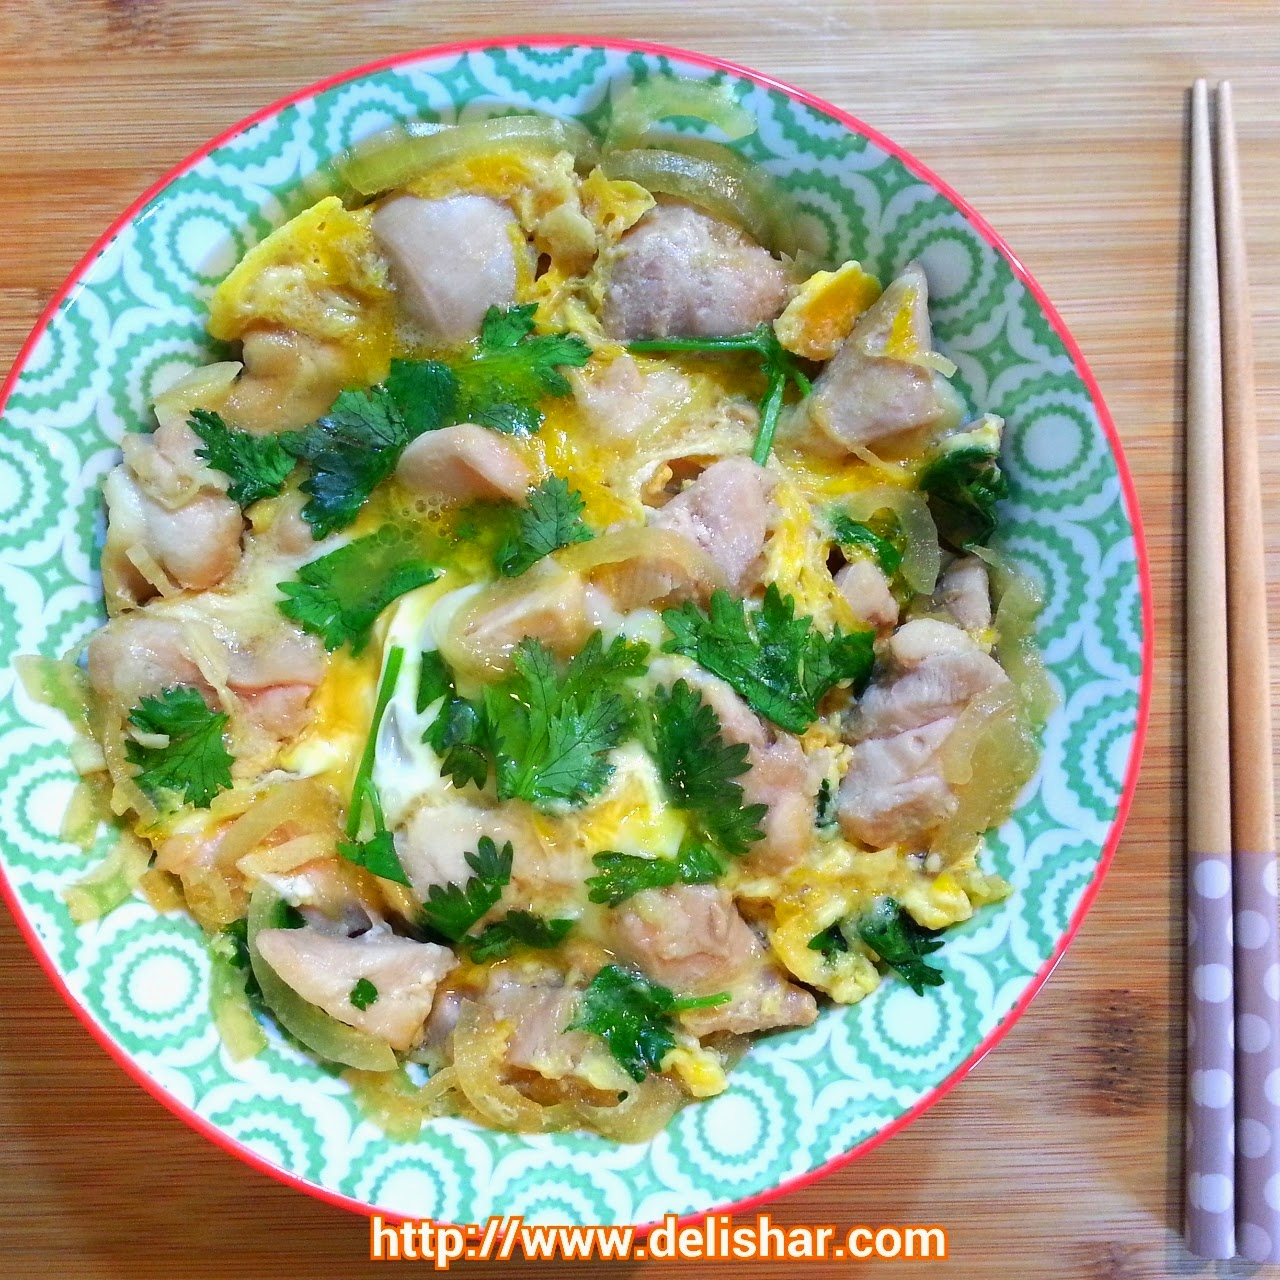 ... : Singapore Cooking & Food Blog: Oyakodon (Chicken and Egg Rice Bowl